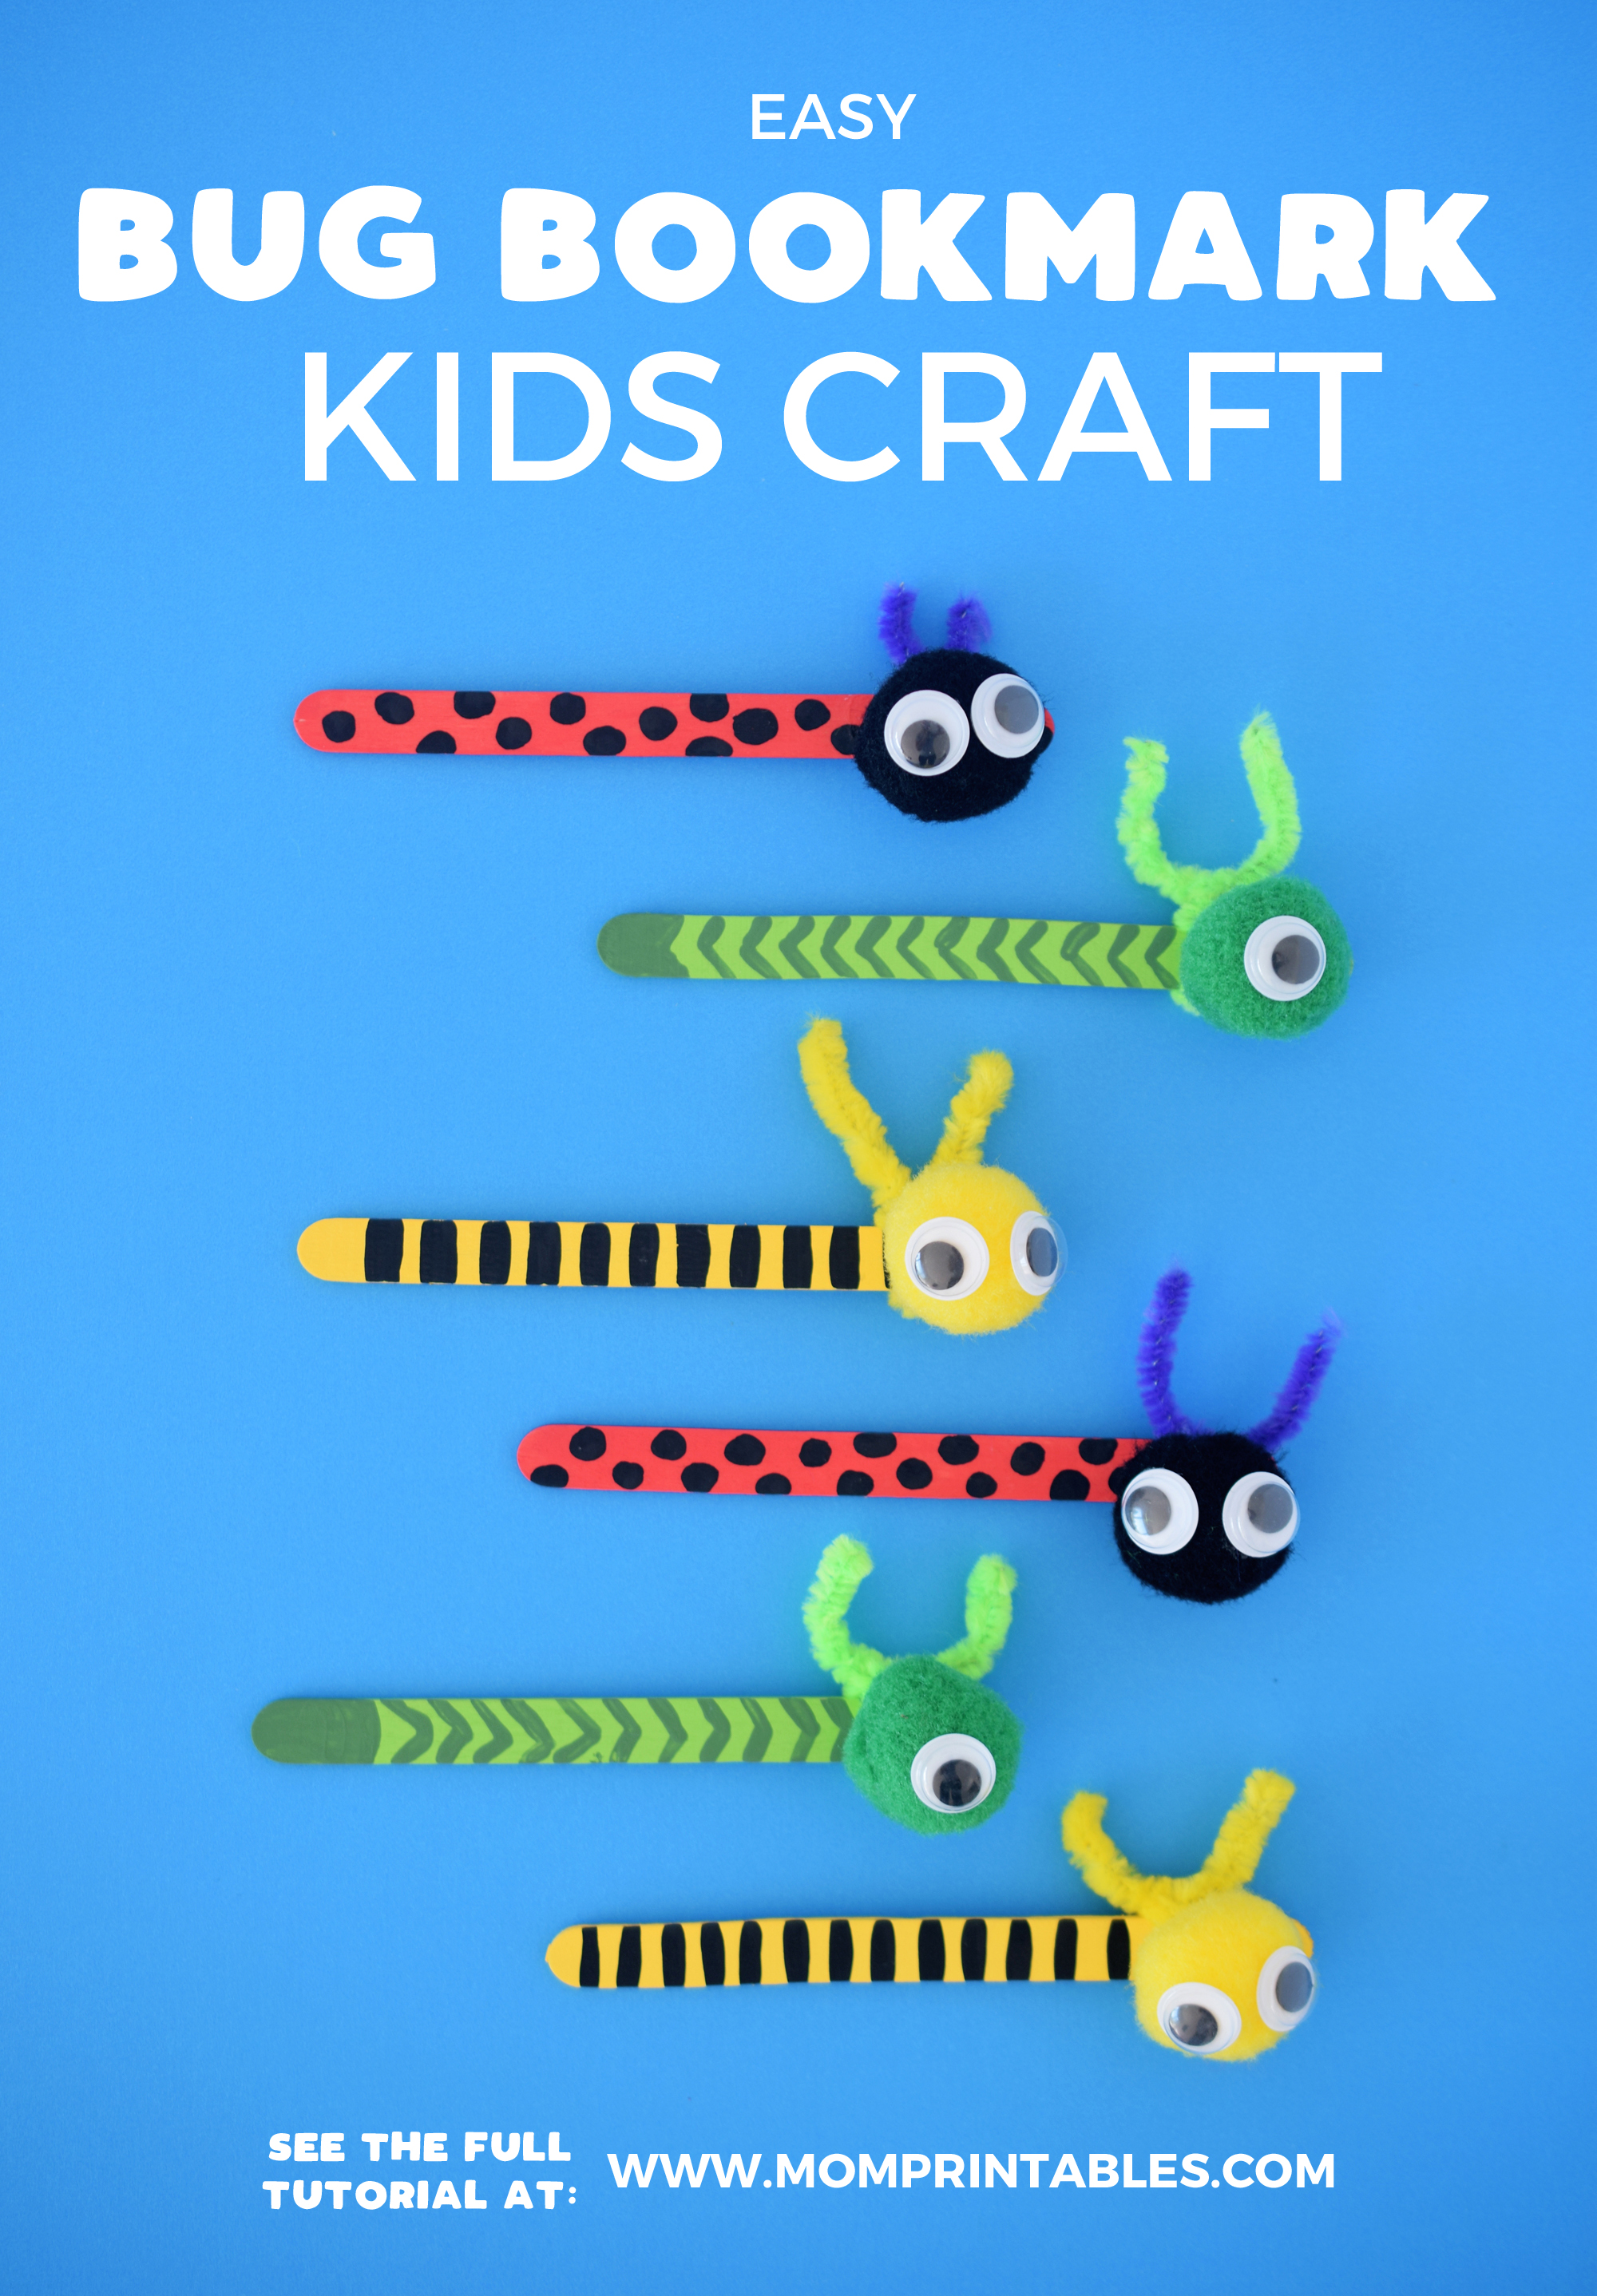 Bookmark Craft for kids | ideas | preschool | for toddlers | DIY | easy | creative | template | popsicle stick | reading | how to make | tutorials | inspiration | activities | library | bug | insect | ladybug | great gifts | gift ideas #bookmarkcraft #bugcraft #ladybug #caterpillar #kidscraft #toddleractivities